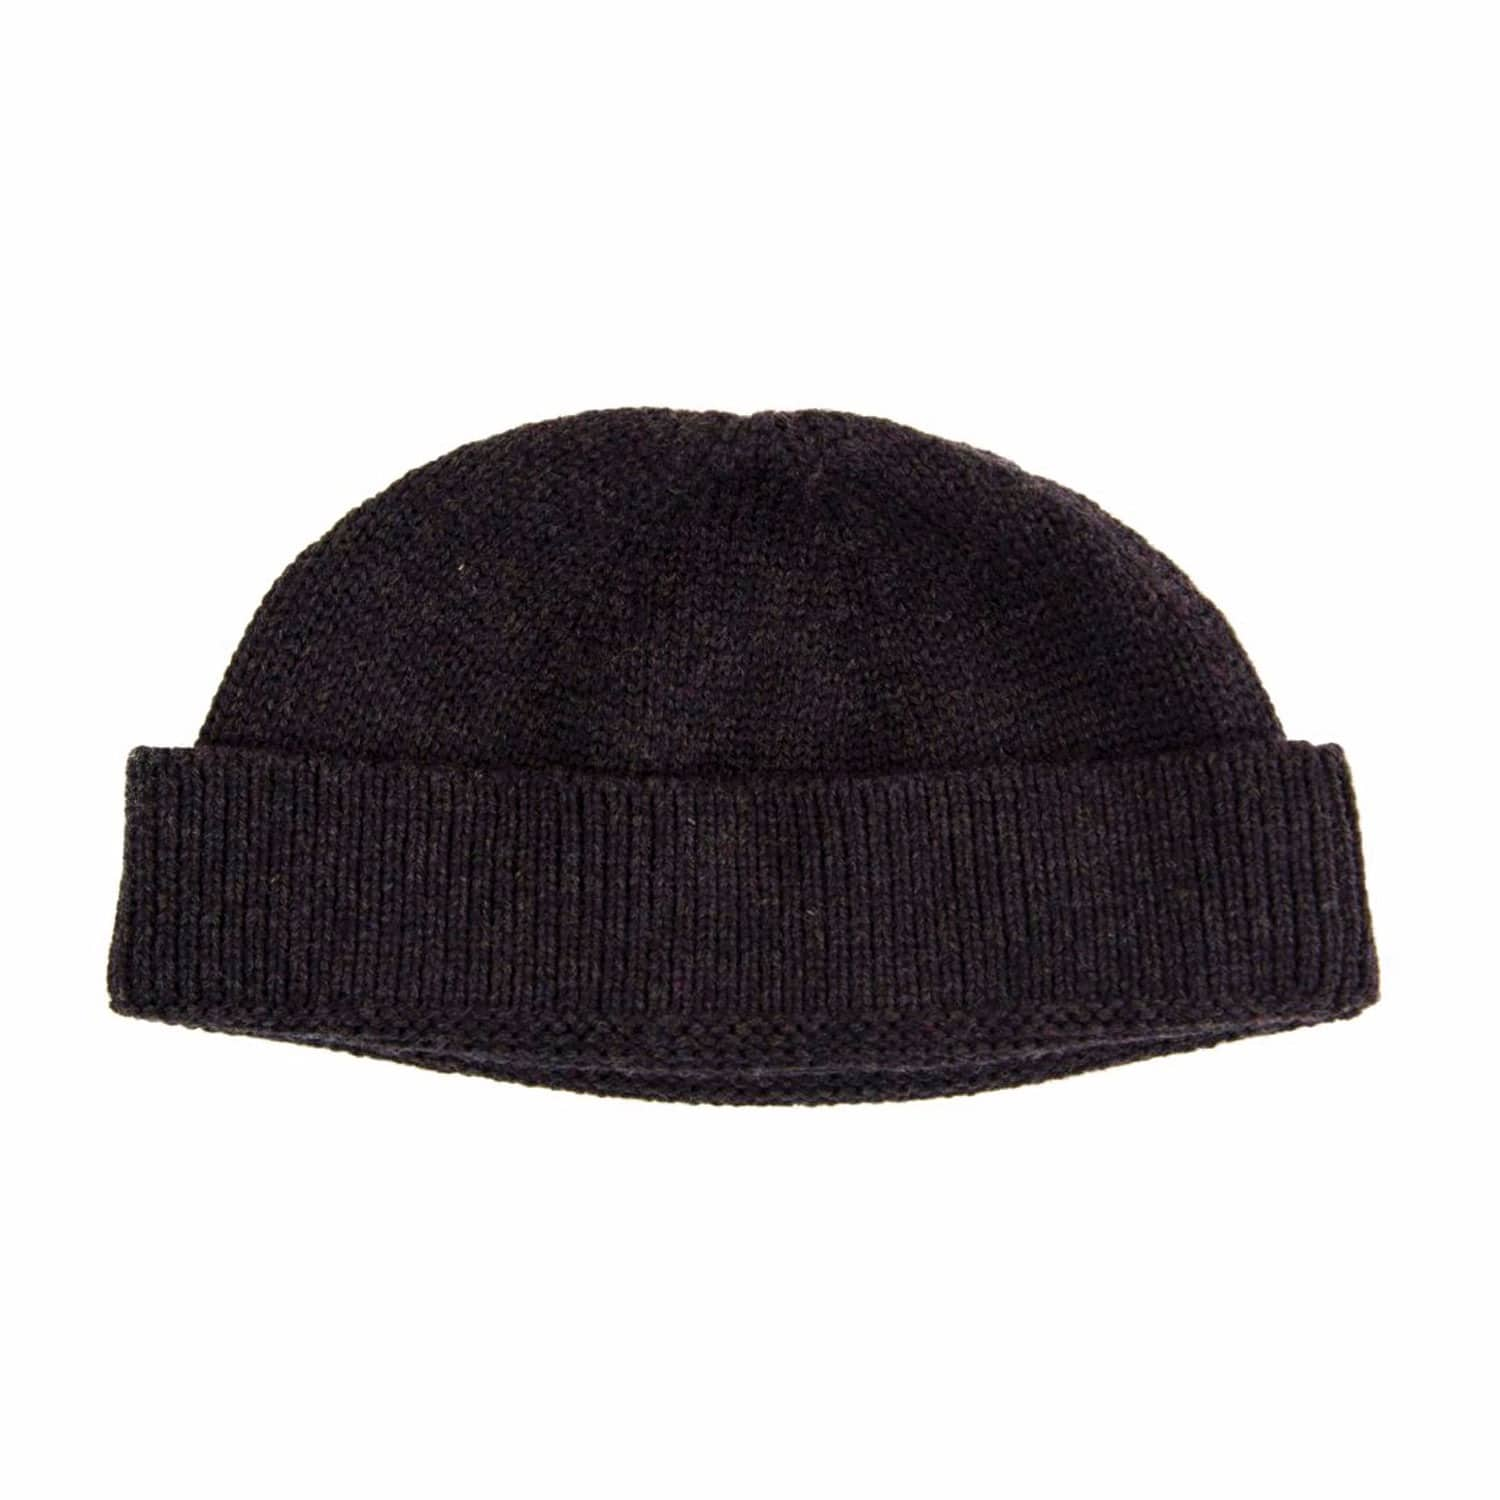 166bf7efda832 Charcoal Solid Wool Fisherman Beanie image